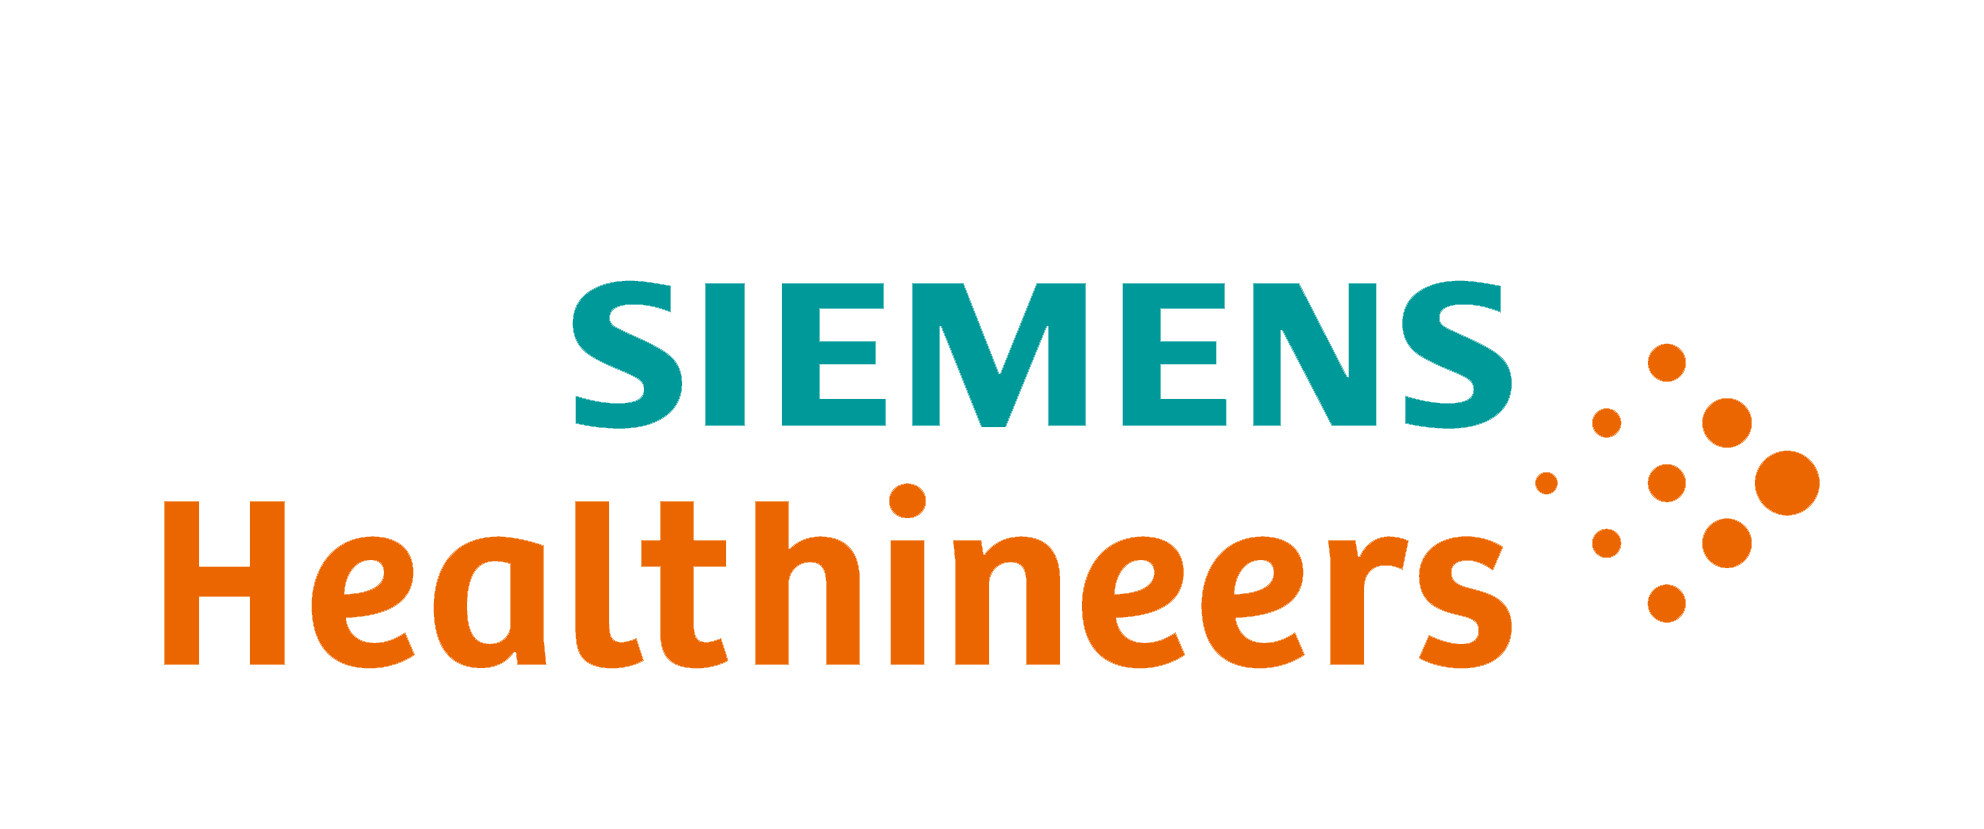 PRESS RELEASE | June 1st, 2017 - Siemens Healthineers announced the closing  of the acquisition of Medicalis and the integration of the Medicalis  solutions PlusPng.com  - Siemens PNG